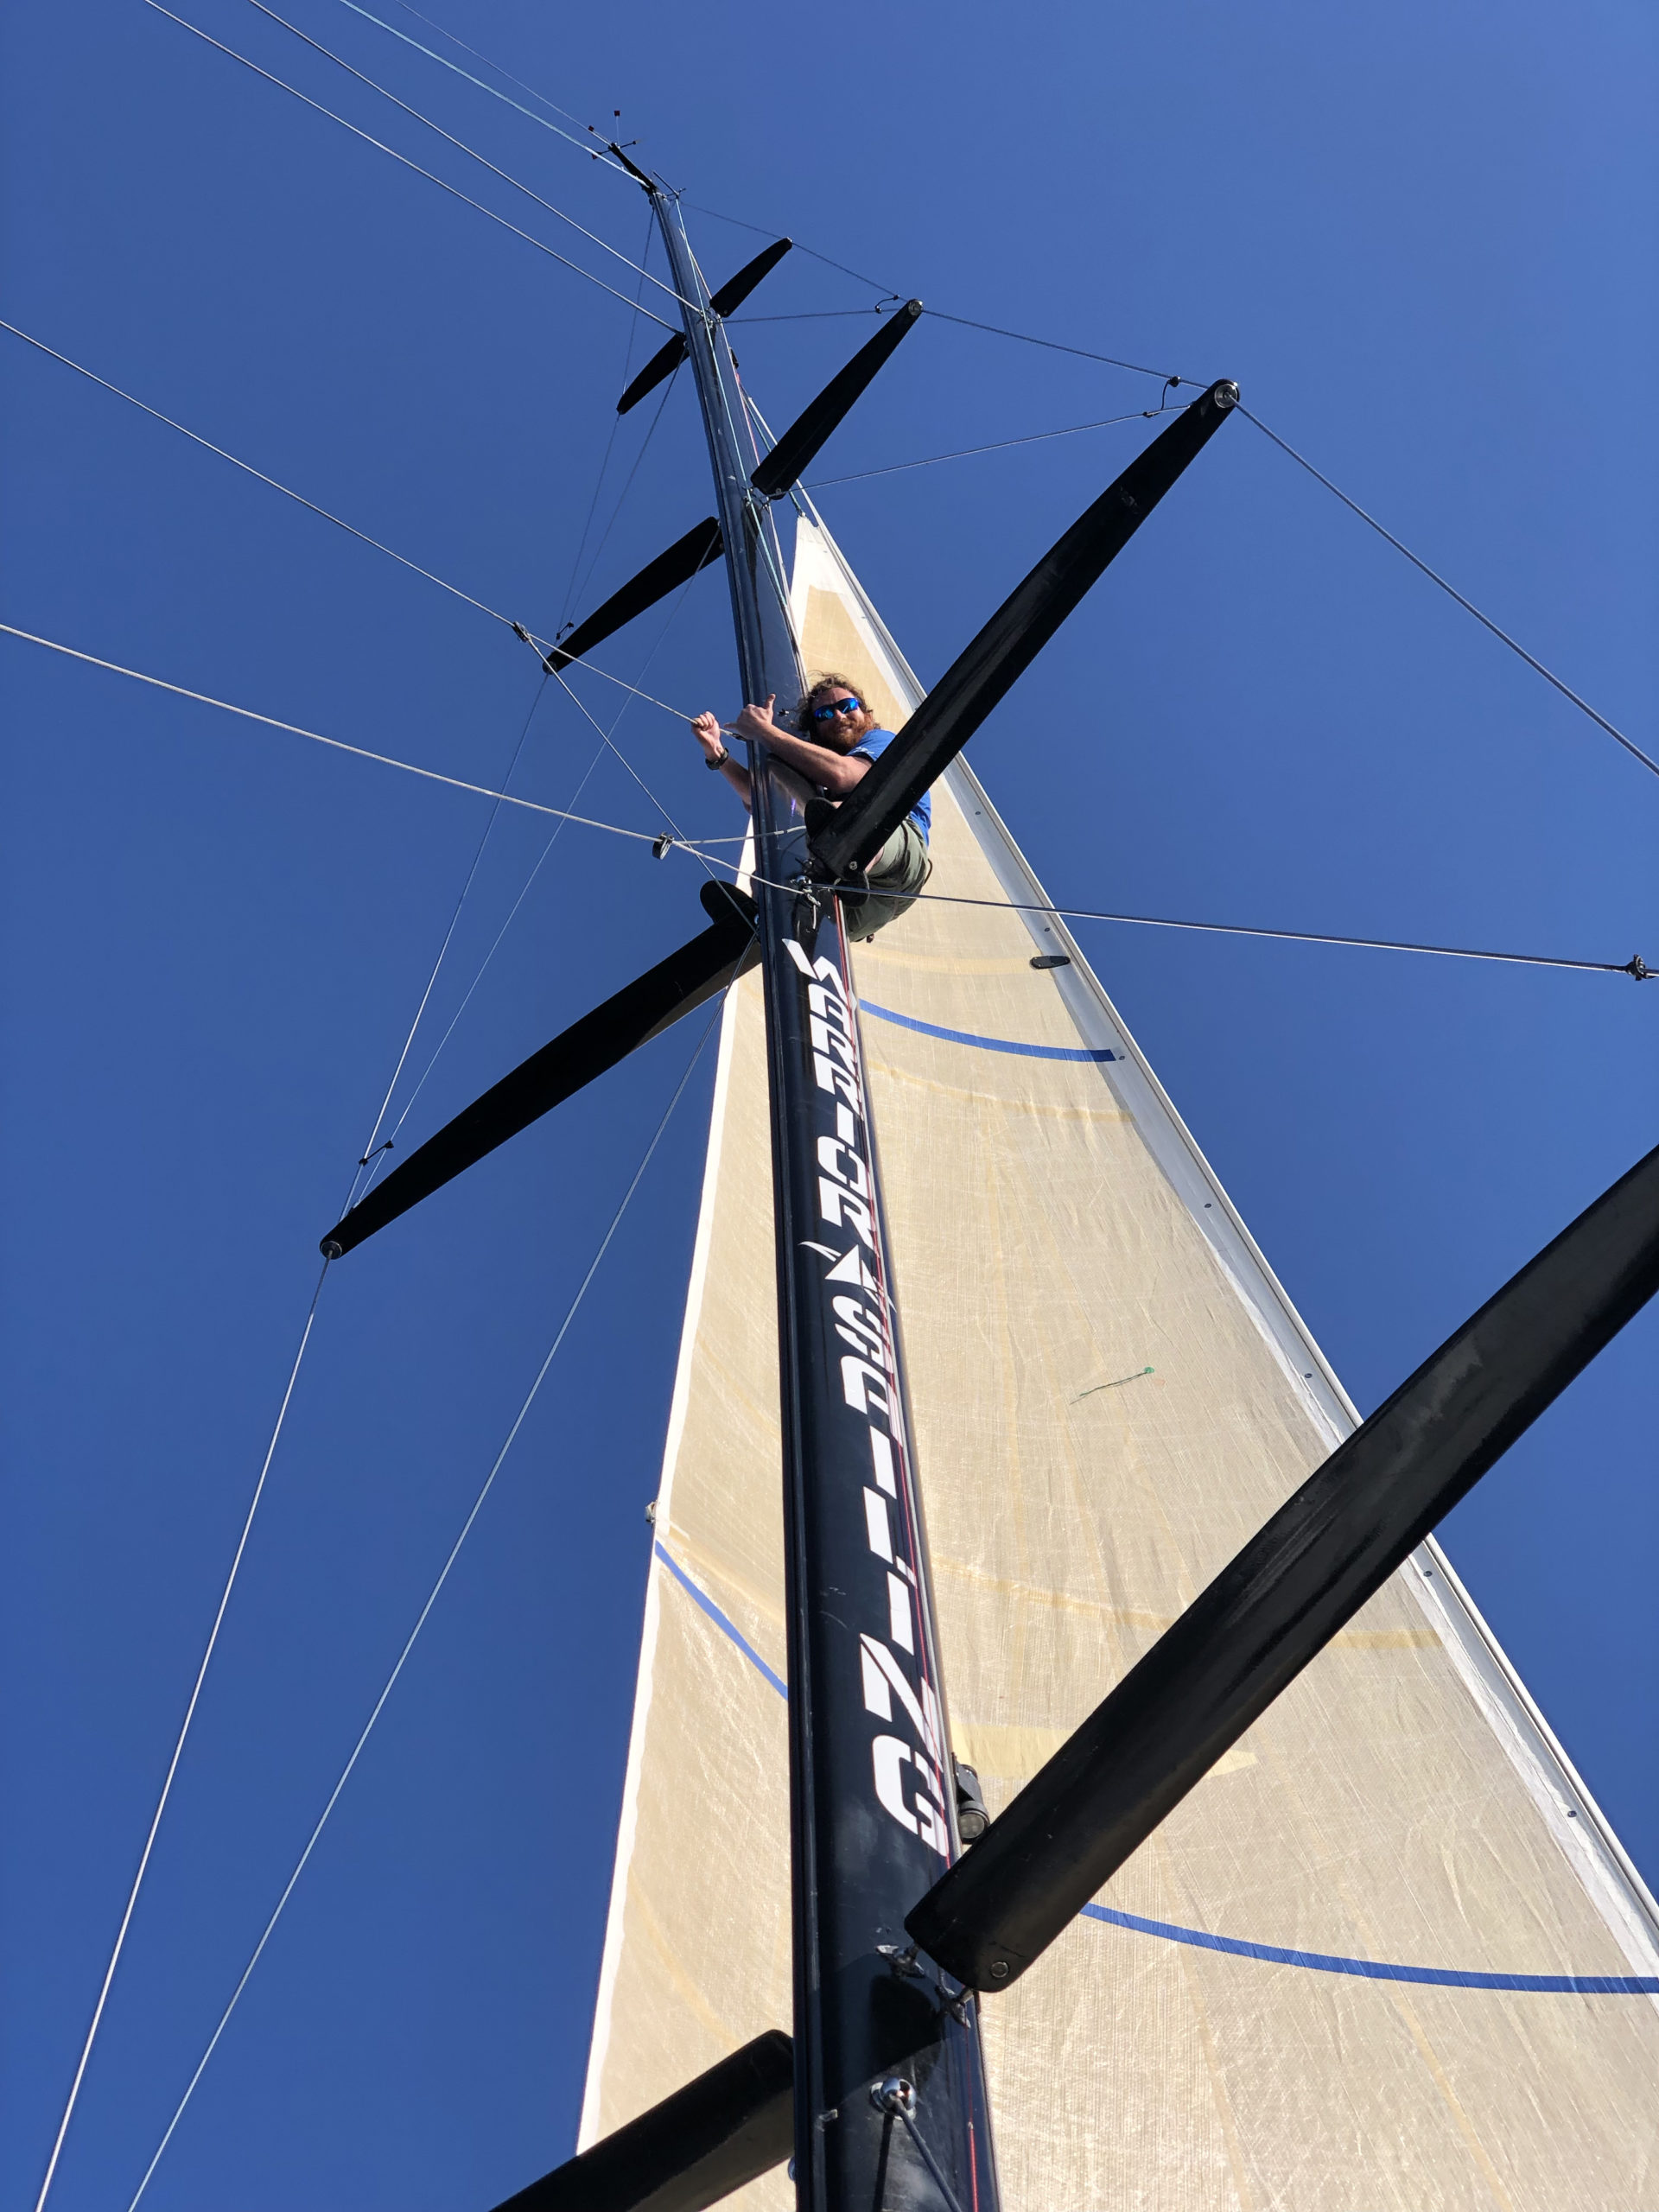 Warrior Sailing Mast